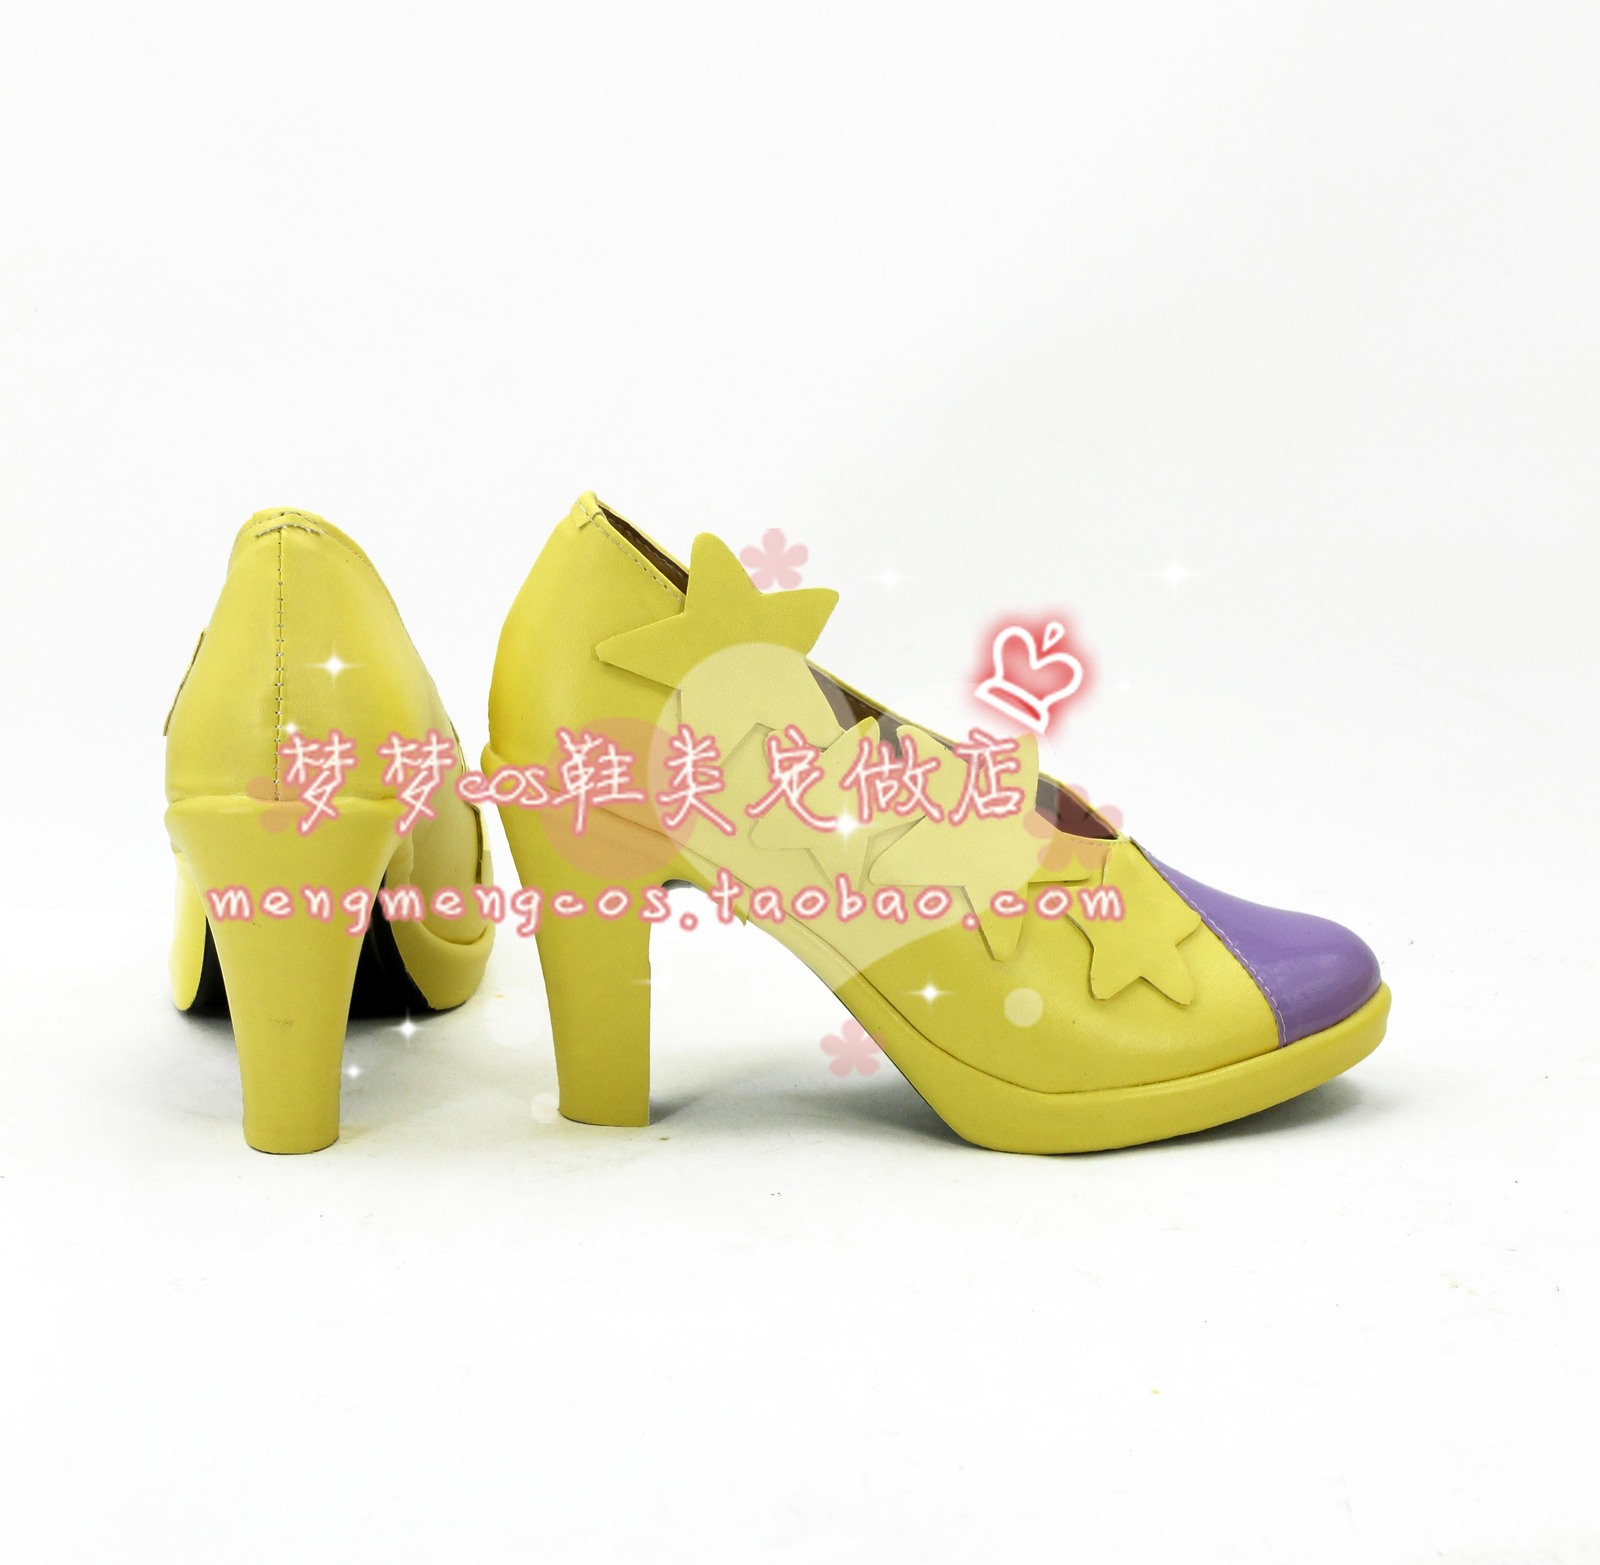 Pretty Cure Precure Cure Twinkle cute lolita cos Cosplay Shoes boots shoe #AT29